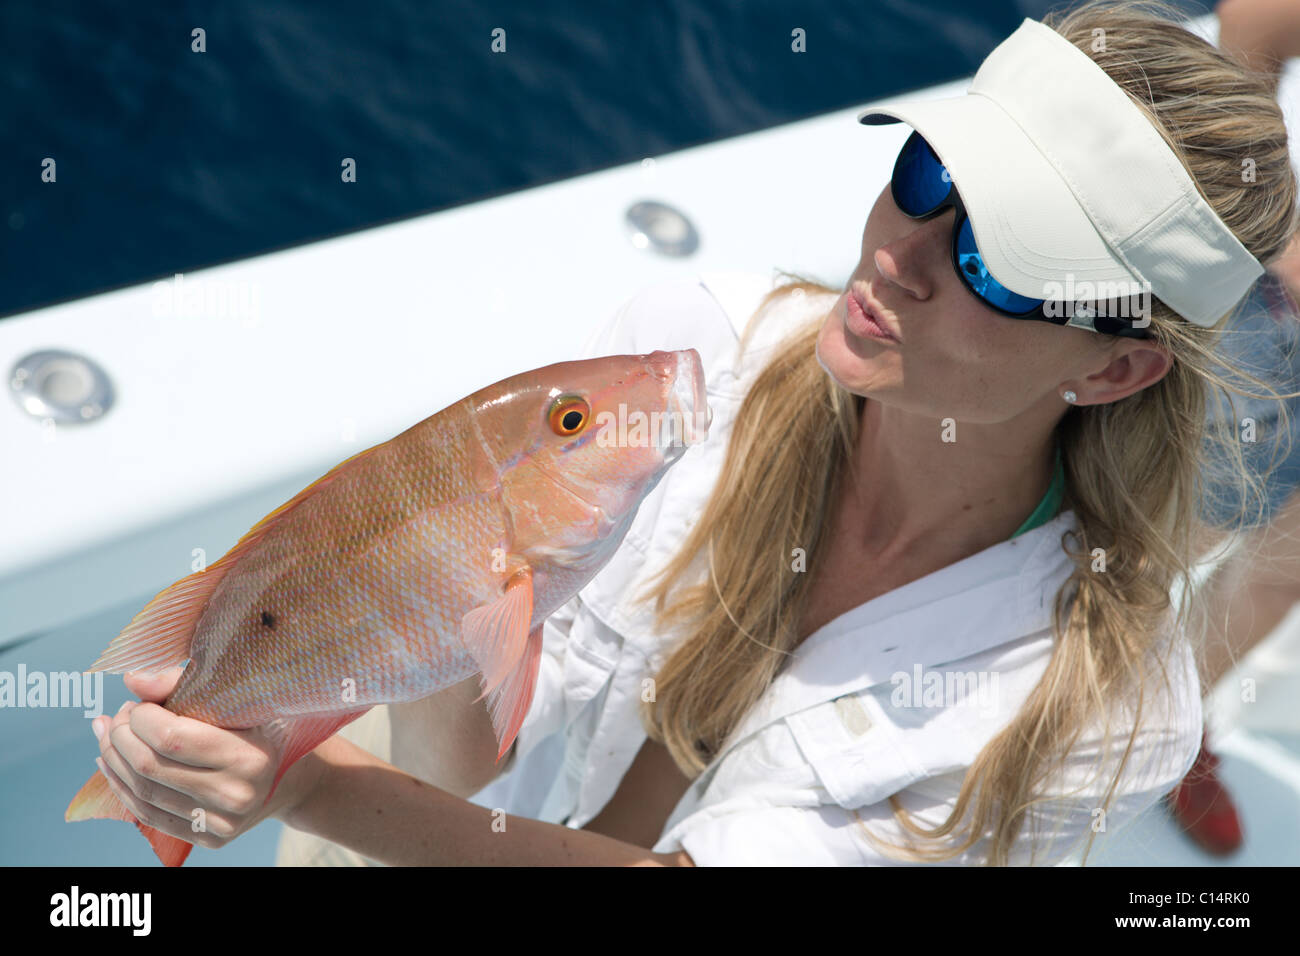 A blonde woman with a white hat and sunglasses holds a freshly caught red snapper and blows it a kiss. - Stock Photo